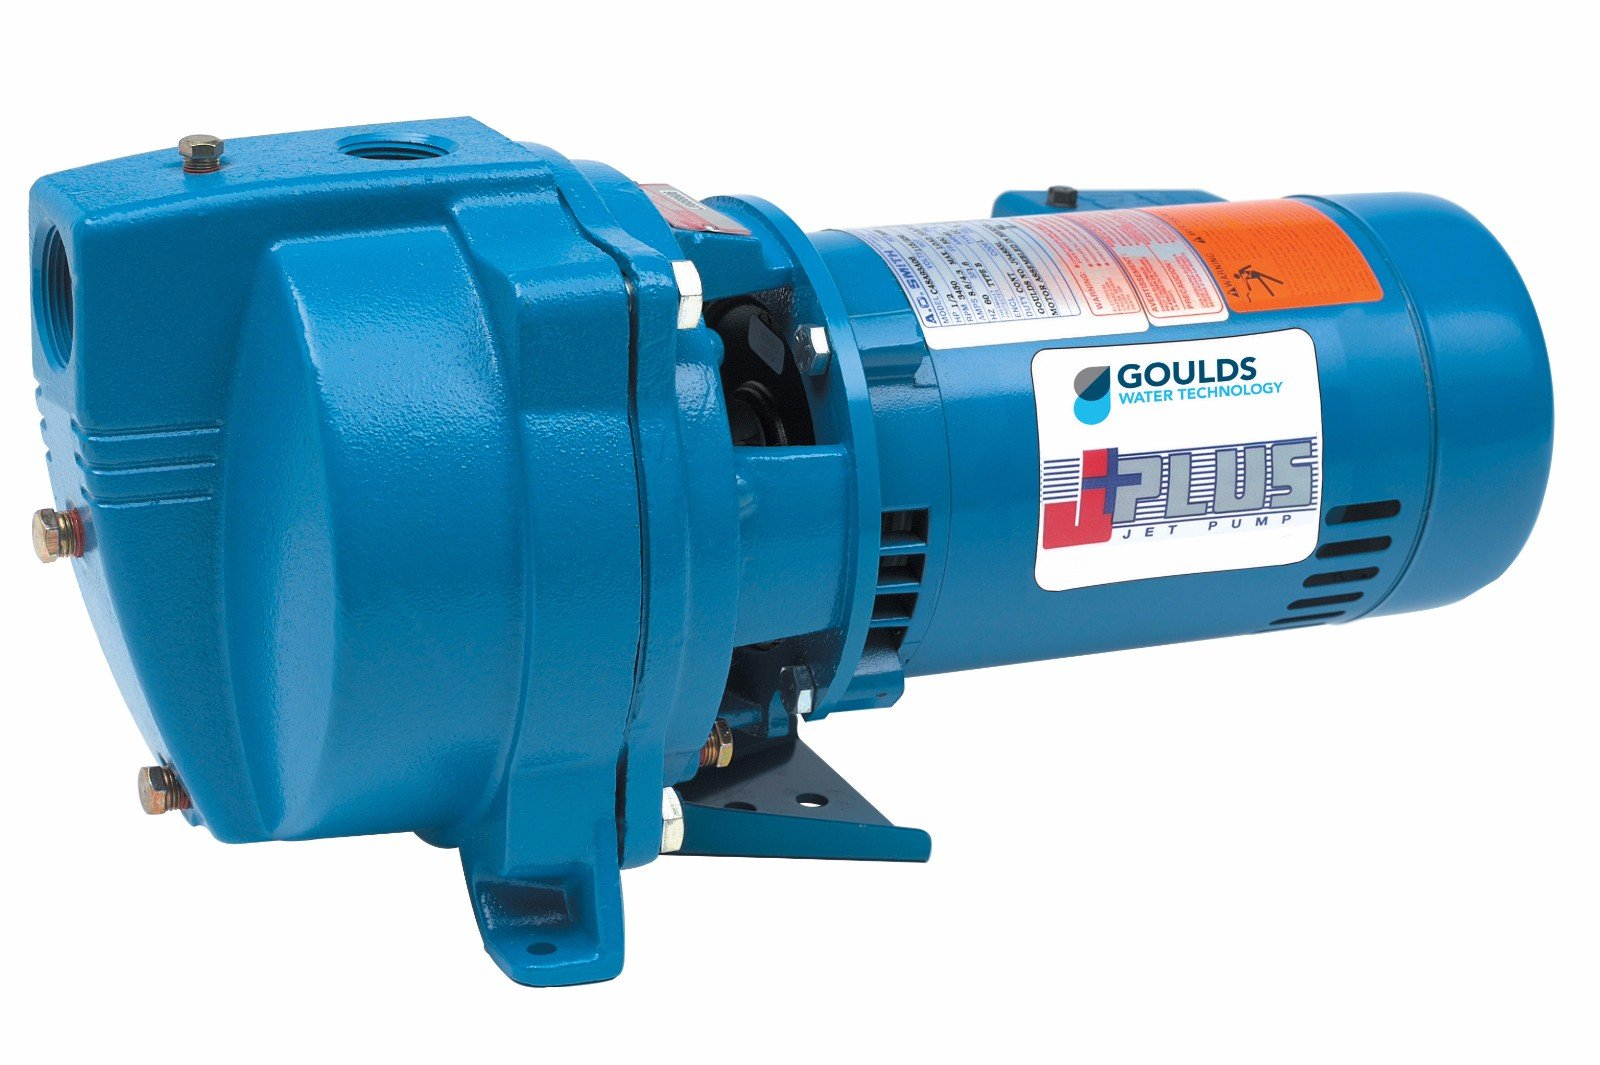 Goulds-J7S Single Nose Shallow Well Goulds-Jet Pump 3/4HP by Goulds Pump